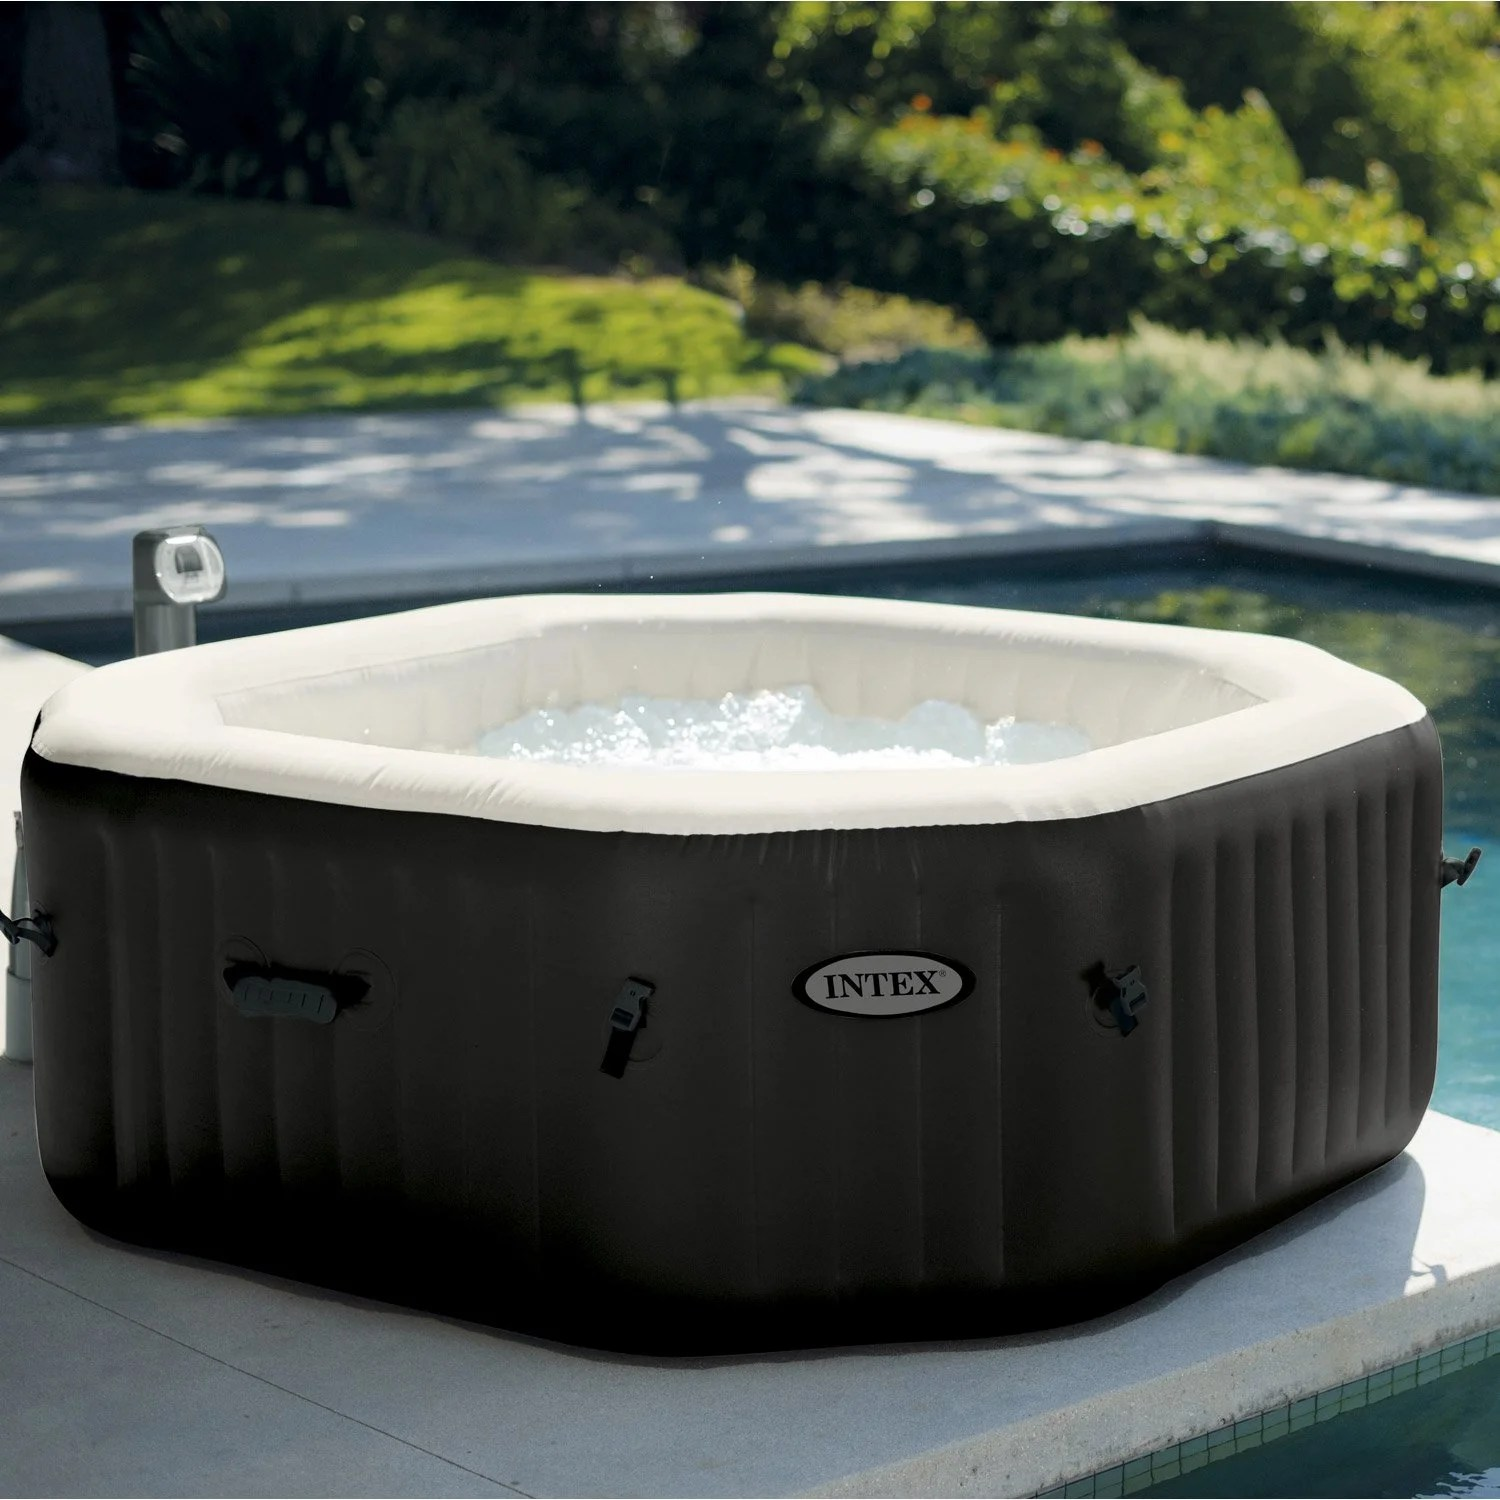 Mini Jacuzzi Exterieur Spa Gonflable Intex Pure Spa Jets Bulles Octogonale 4 Places Assises